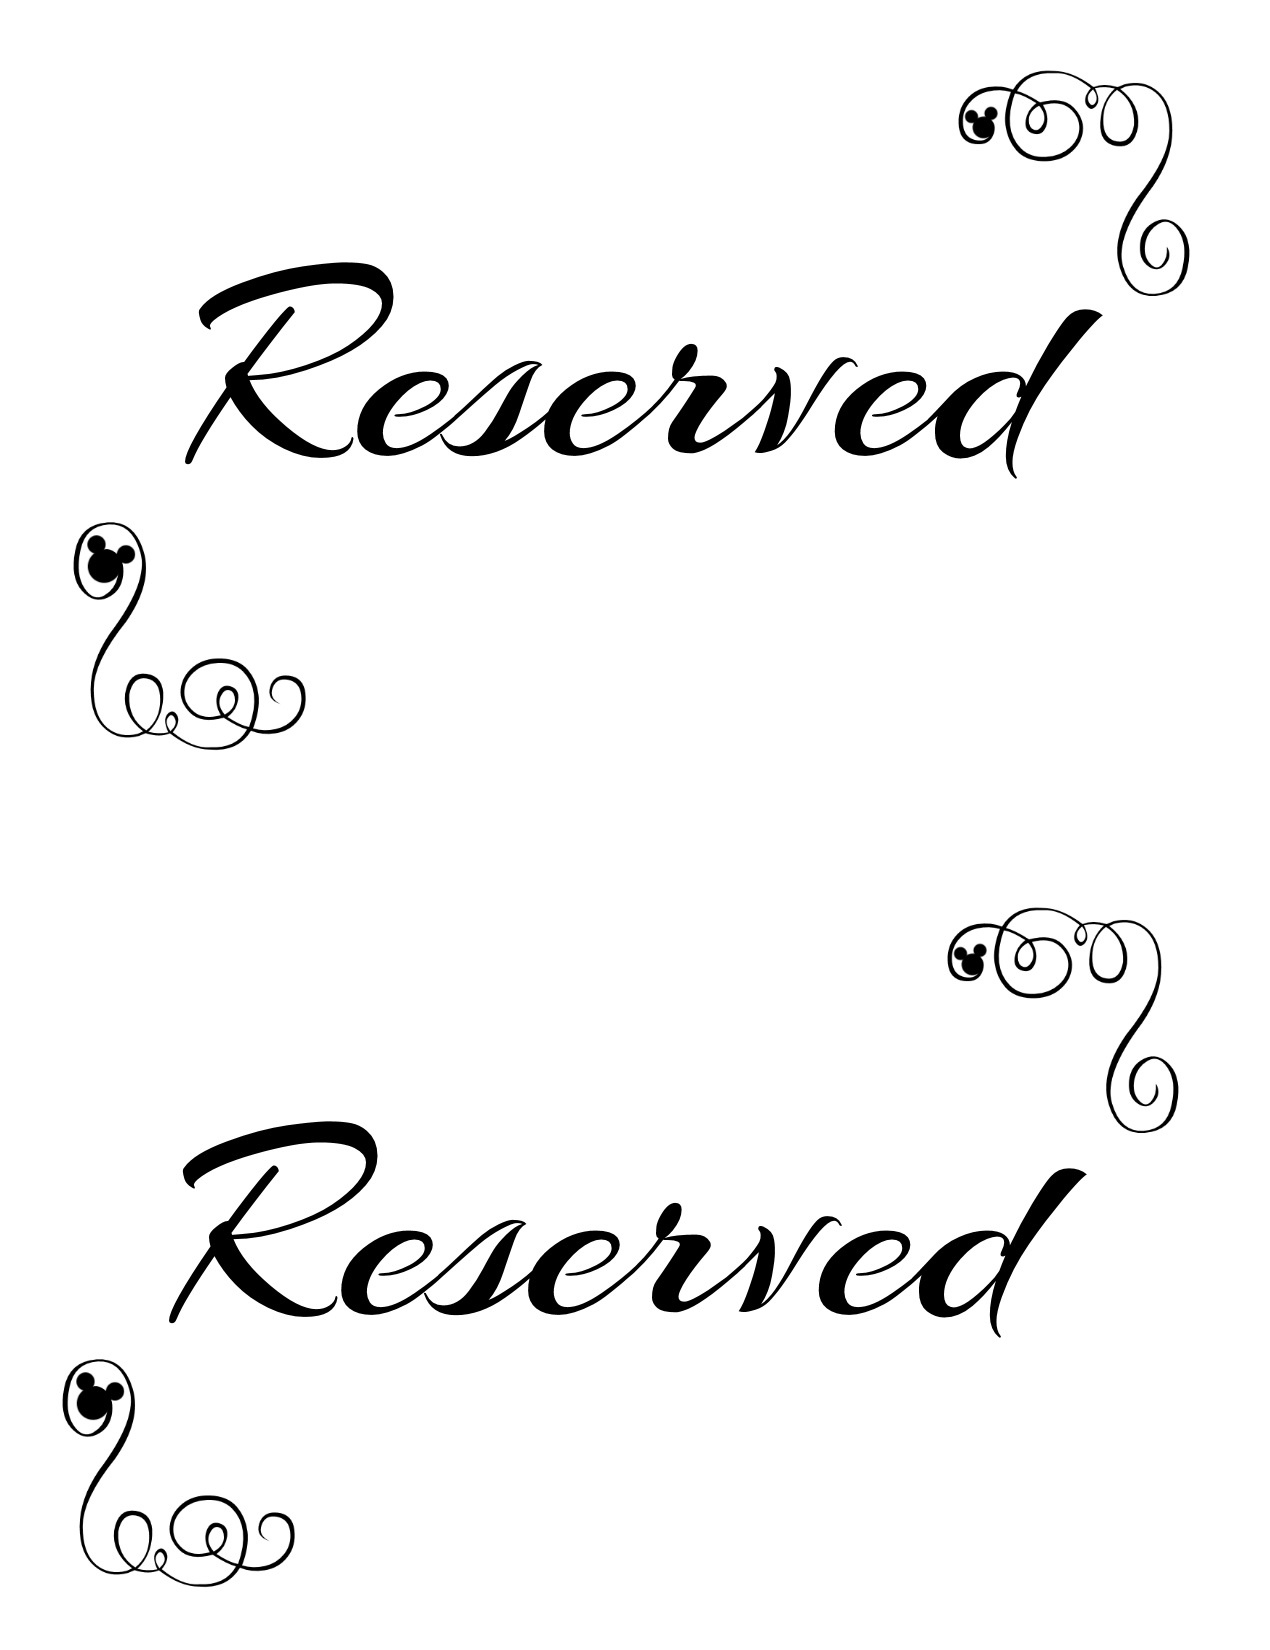 Free Printable Reserved Seating Signs For Your Wedding Ceremony - Free Printable Wedding Signs